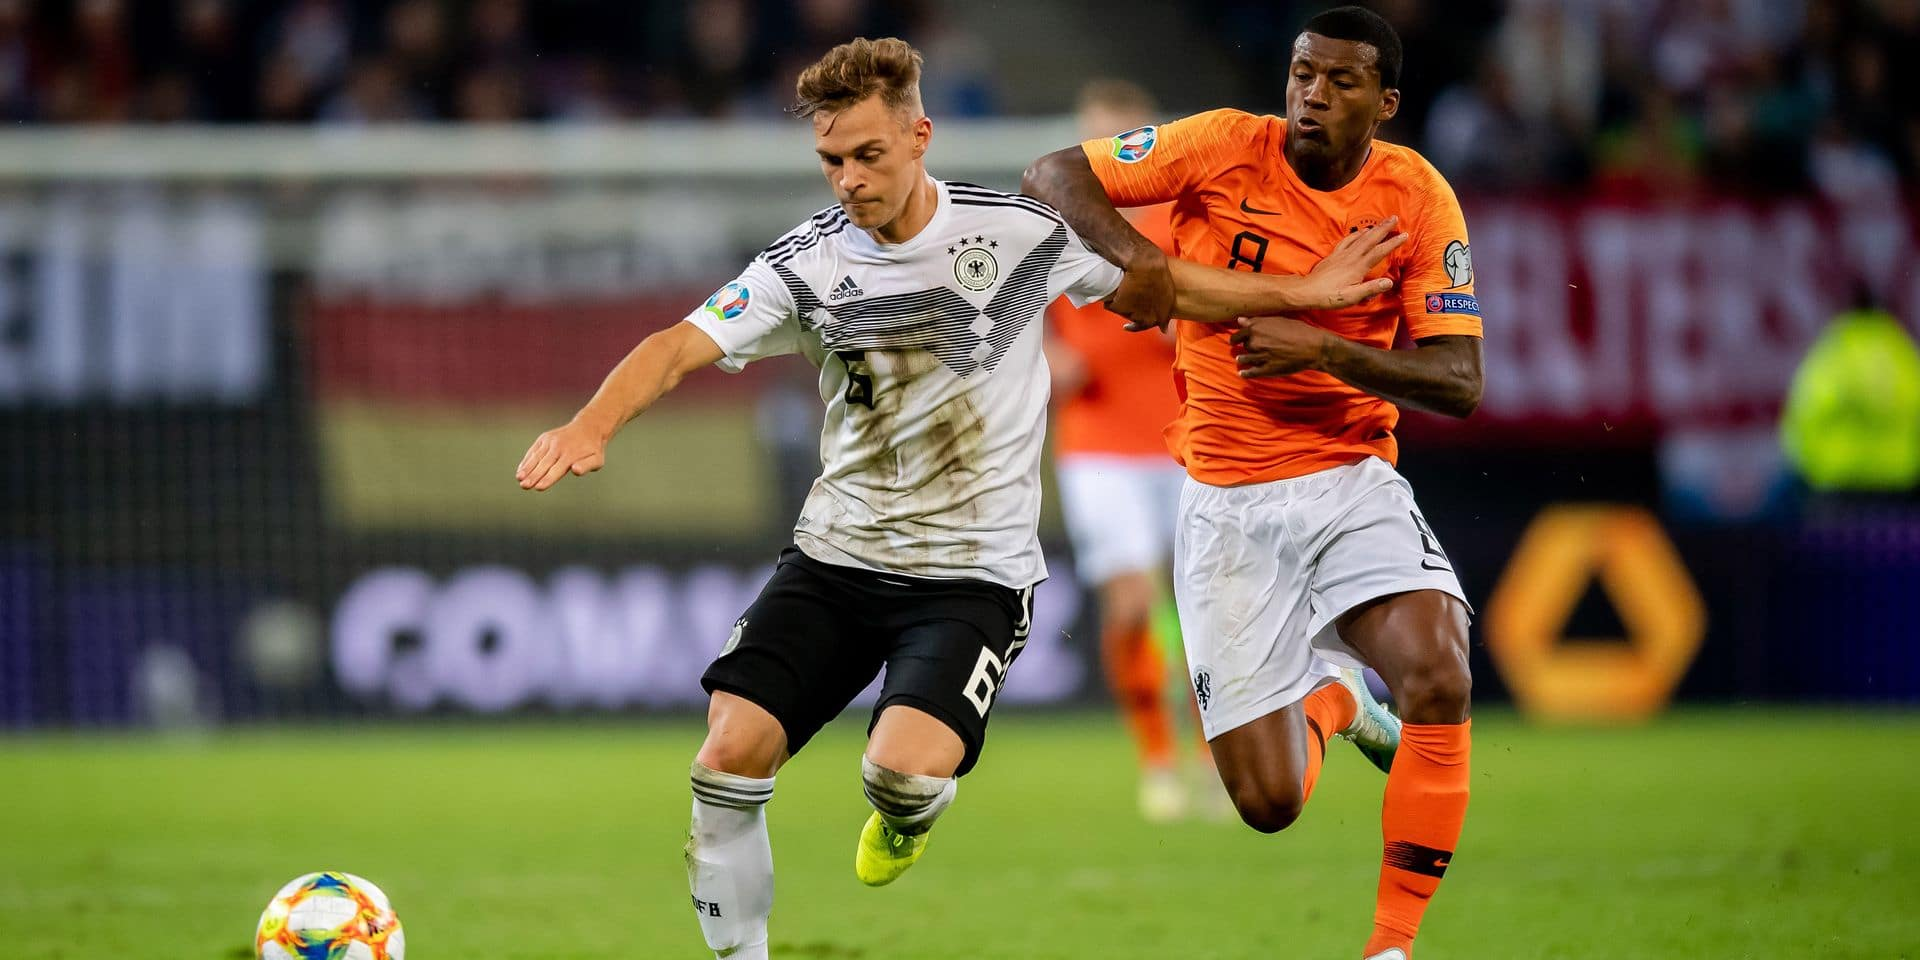 GES / Football / Germany - Netherlands, 06.09.2019